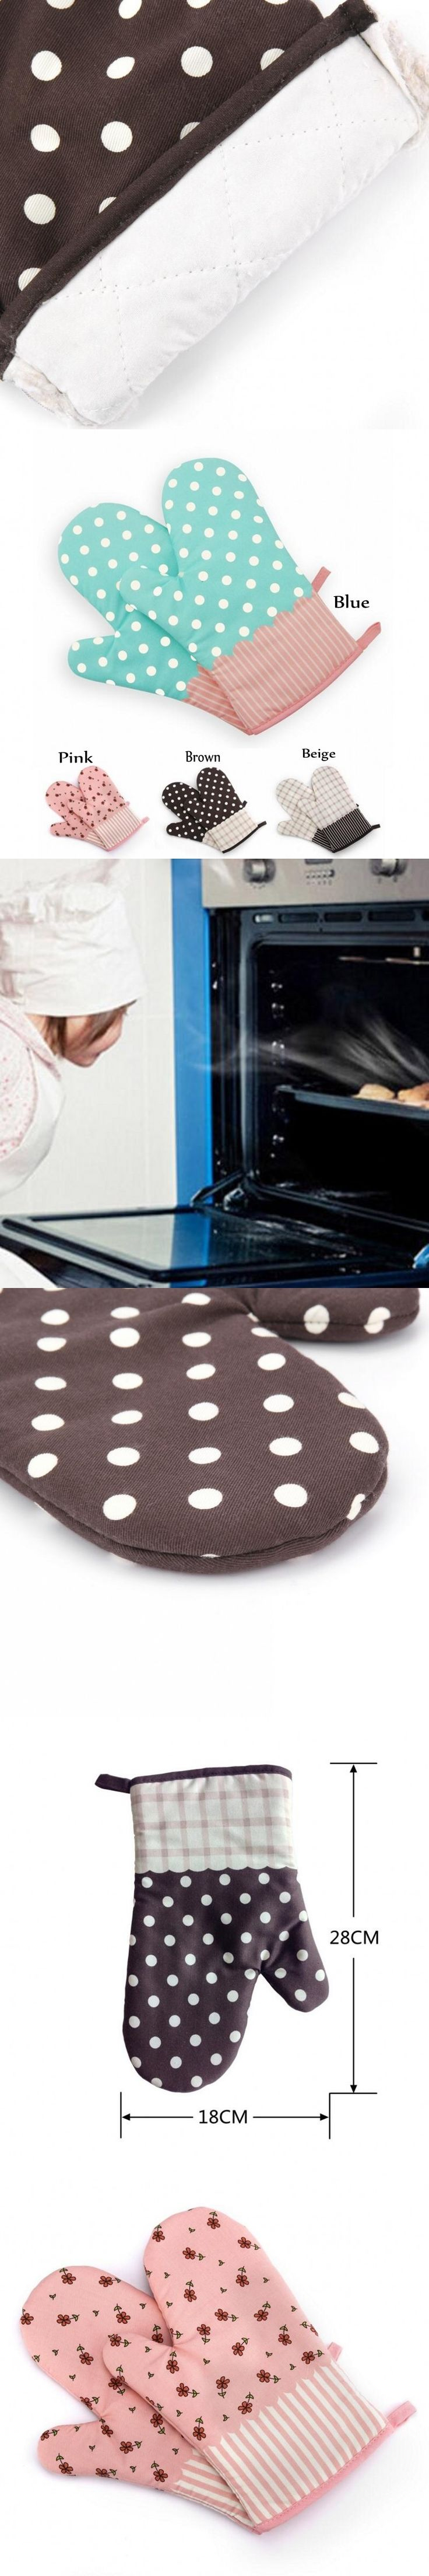 Creative Home Baked Essential Fashion  Gloves Multifunctional Cotton For Microwave Oven Barbecue Heat insulated Gloves